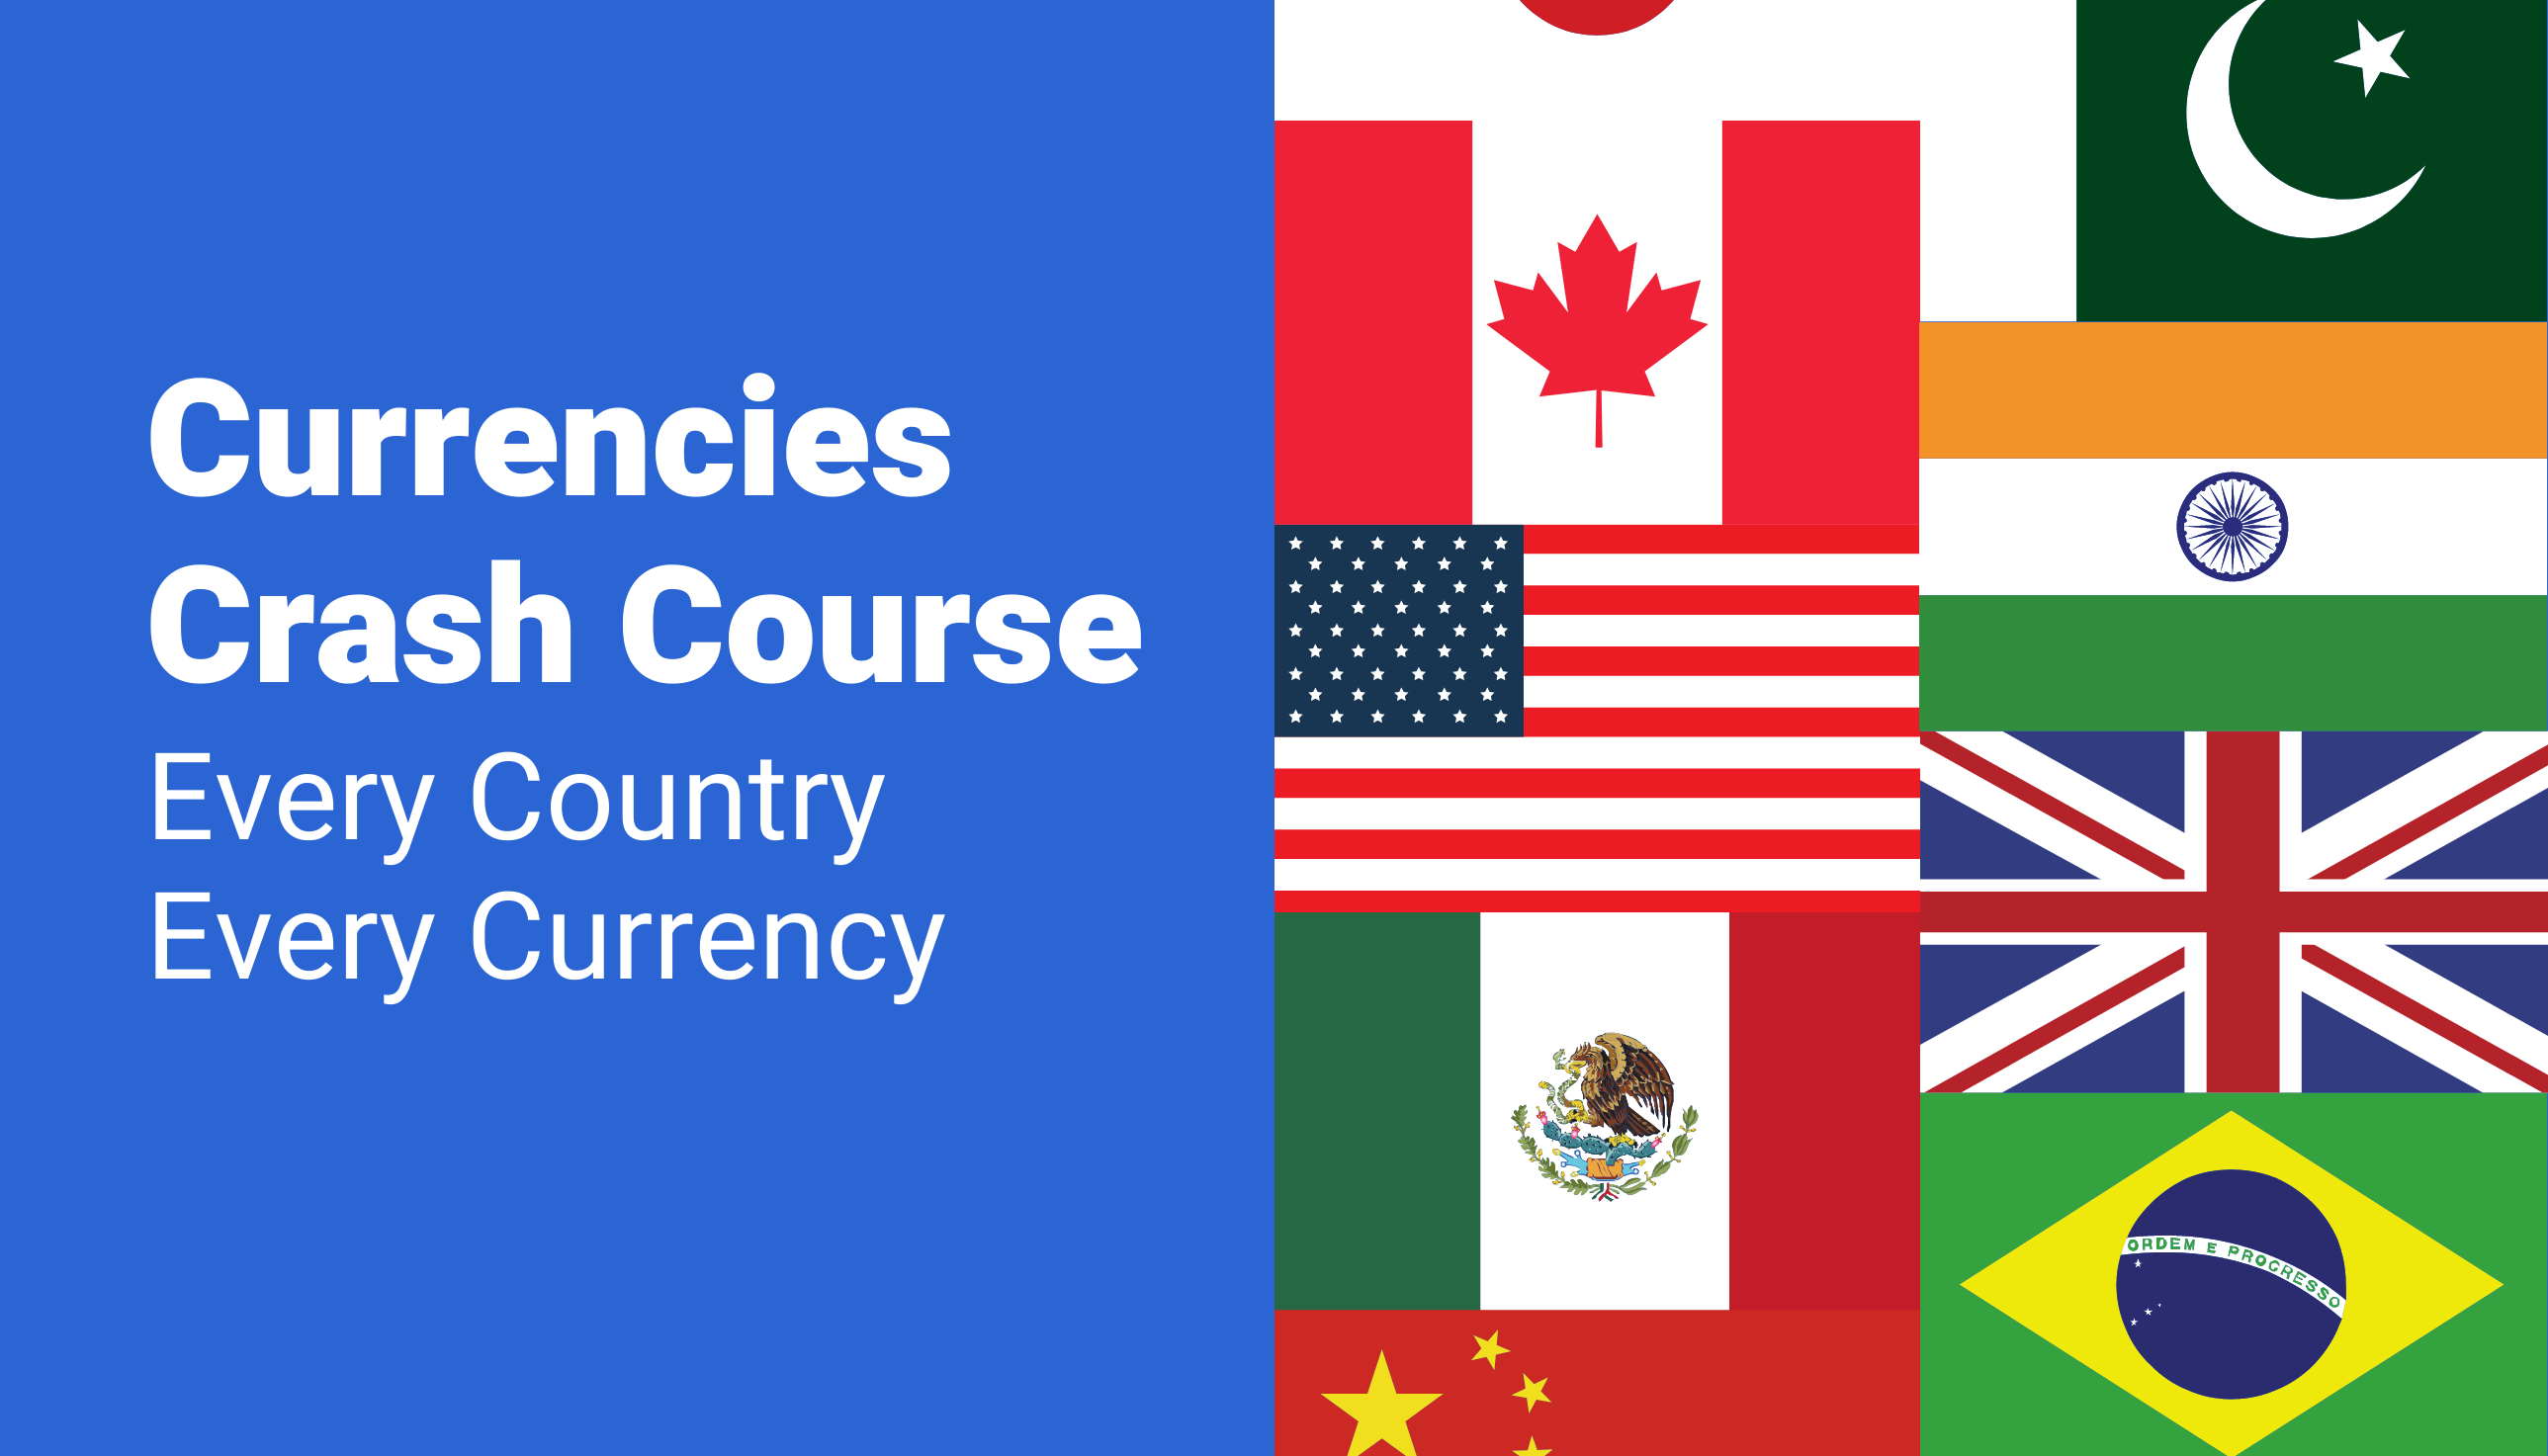 The world's countries and currencies